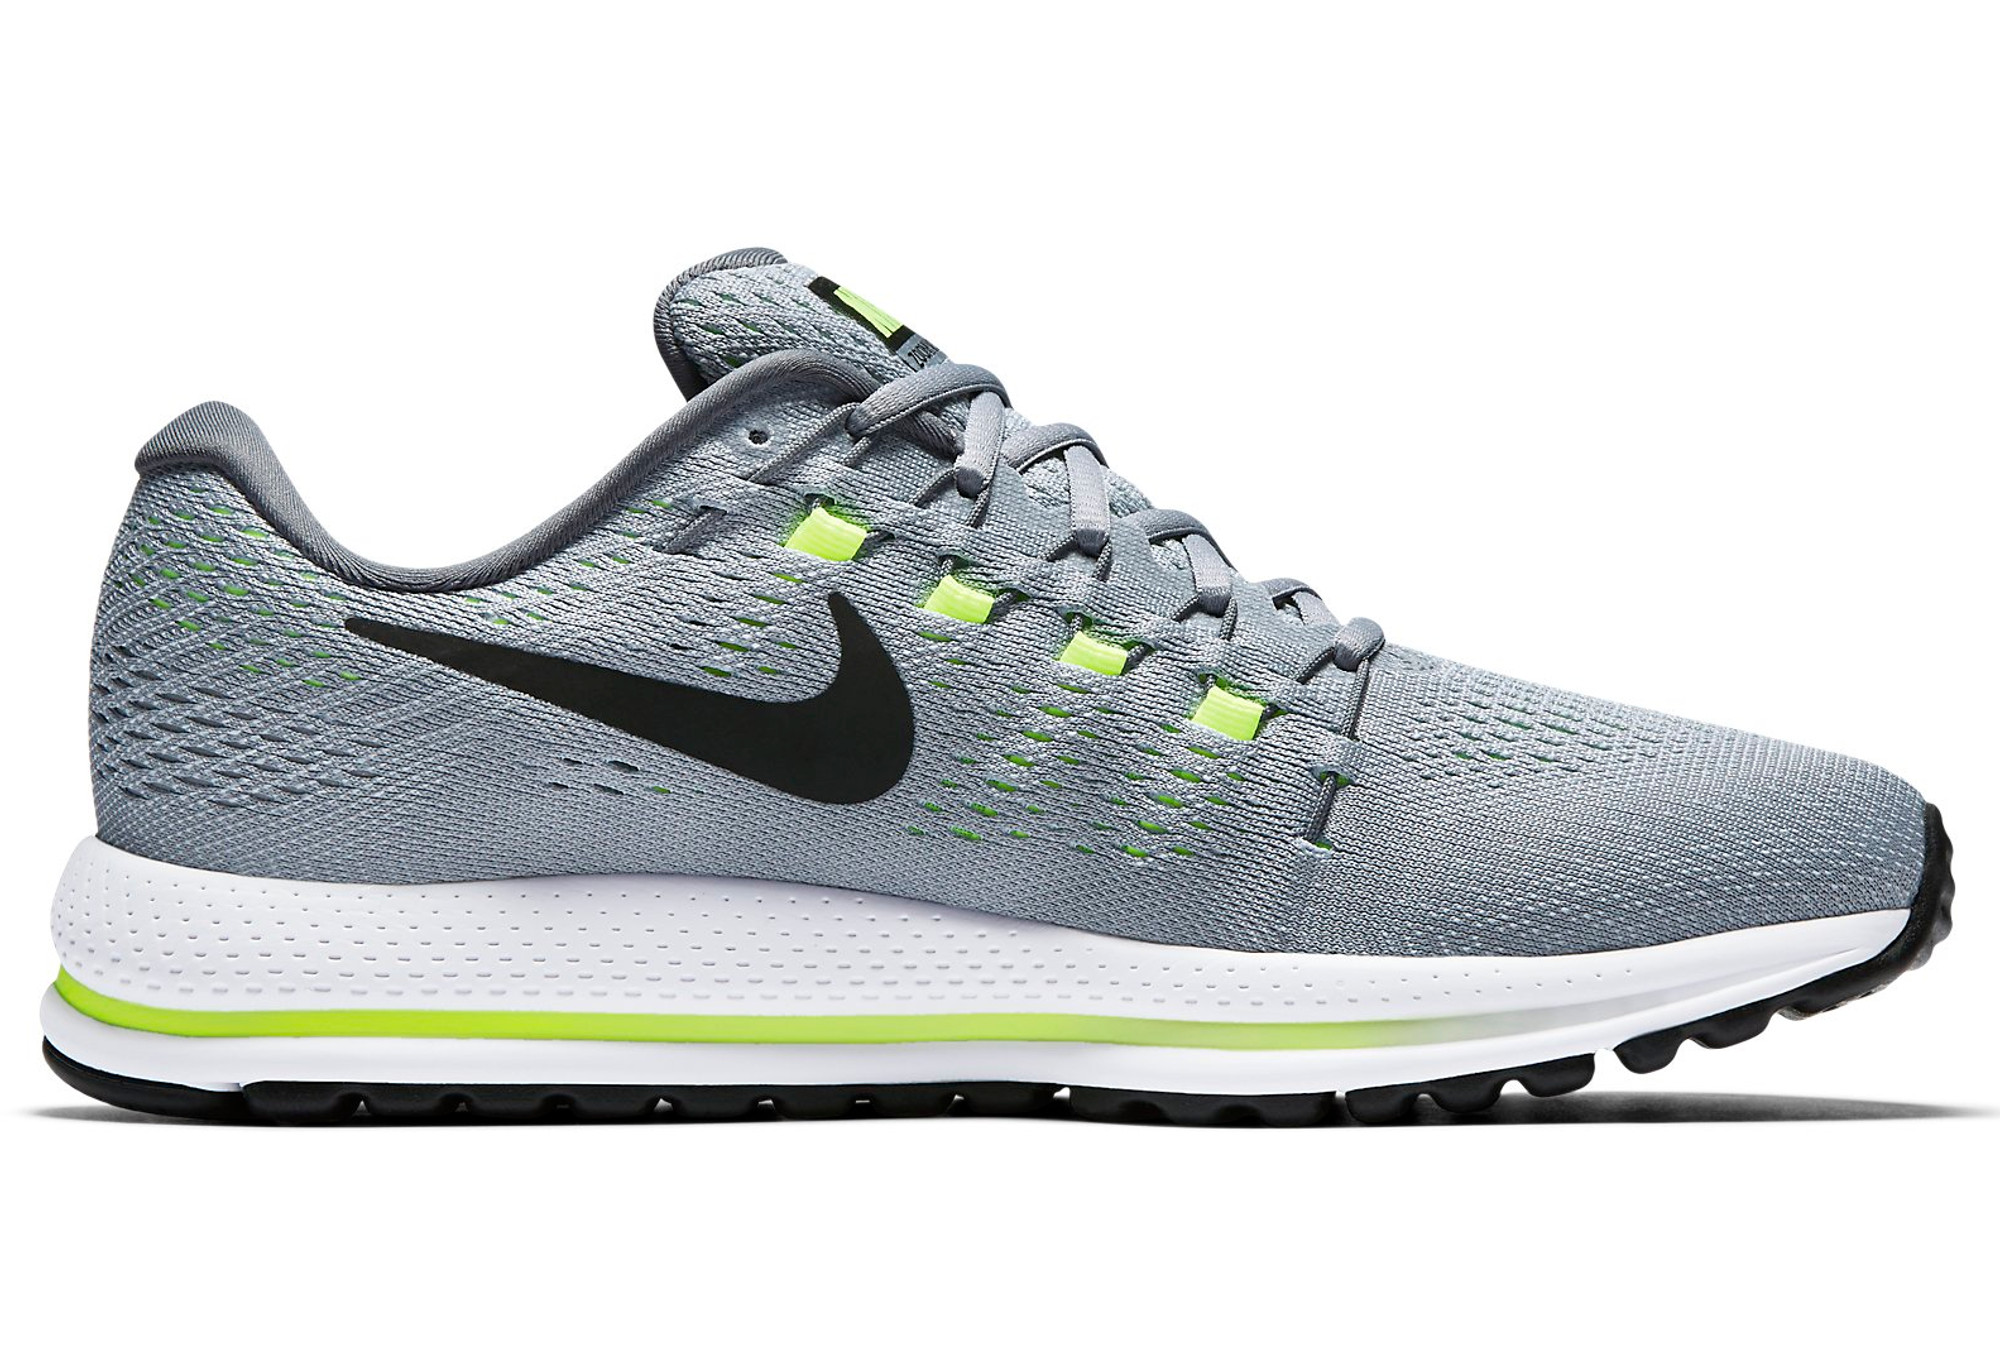 uk availability 71c71 a807e Chaussures de Running Nike Air Zoom Vomero 12 Gris